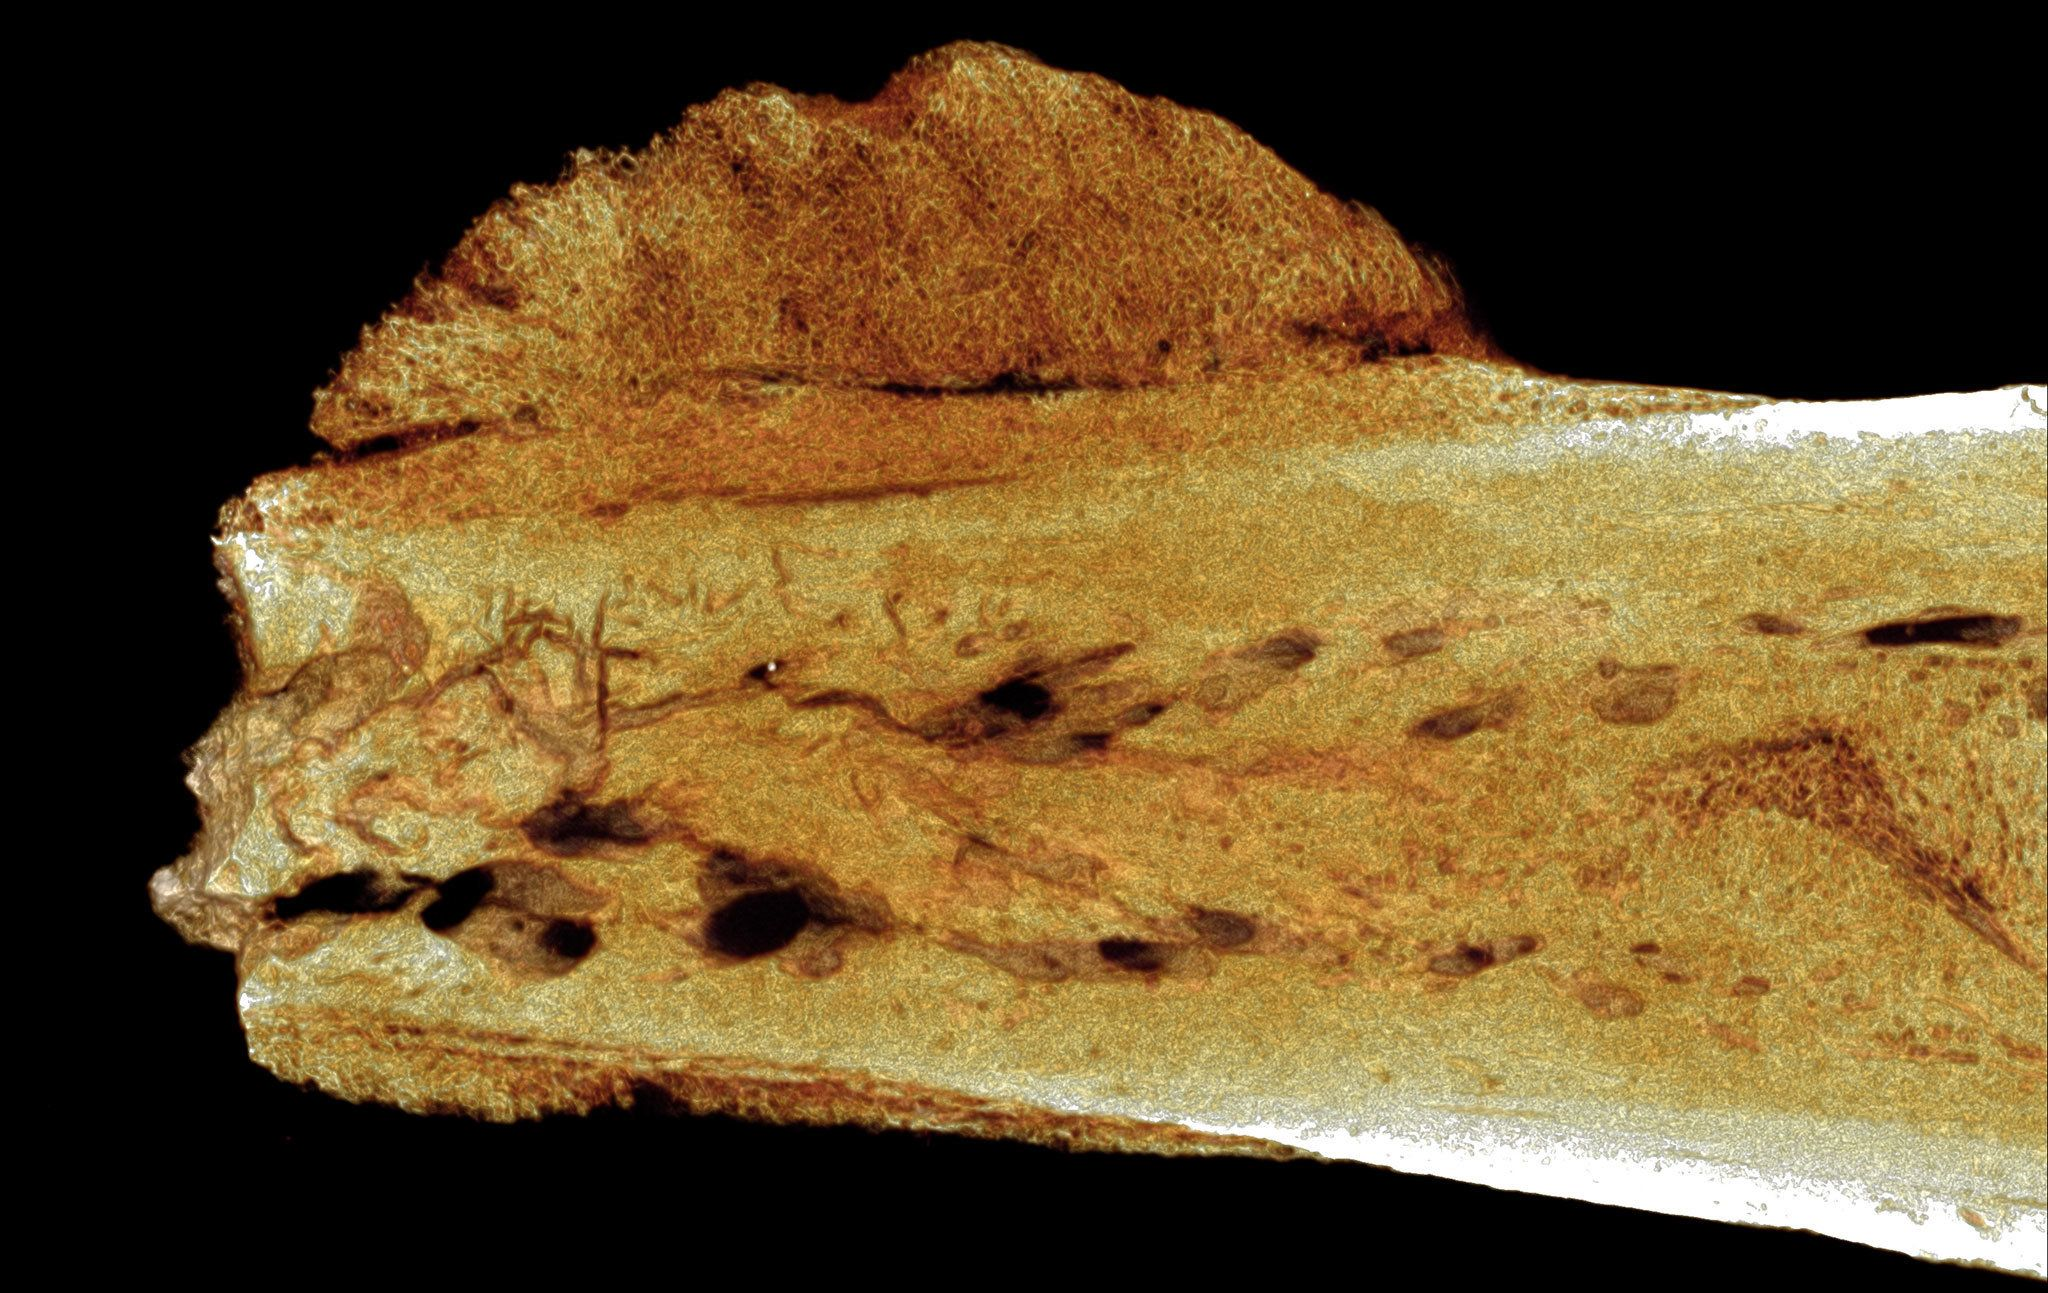 This micro-CT image shows a tumor in an ancient toe bone from a human relative.